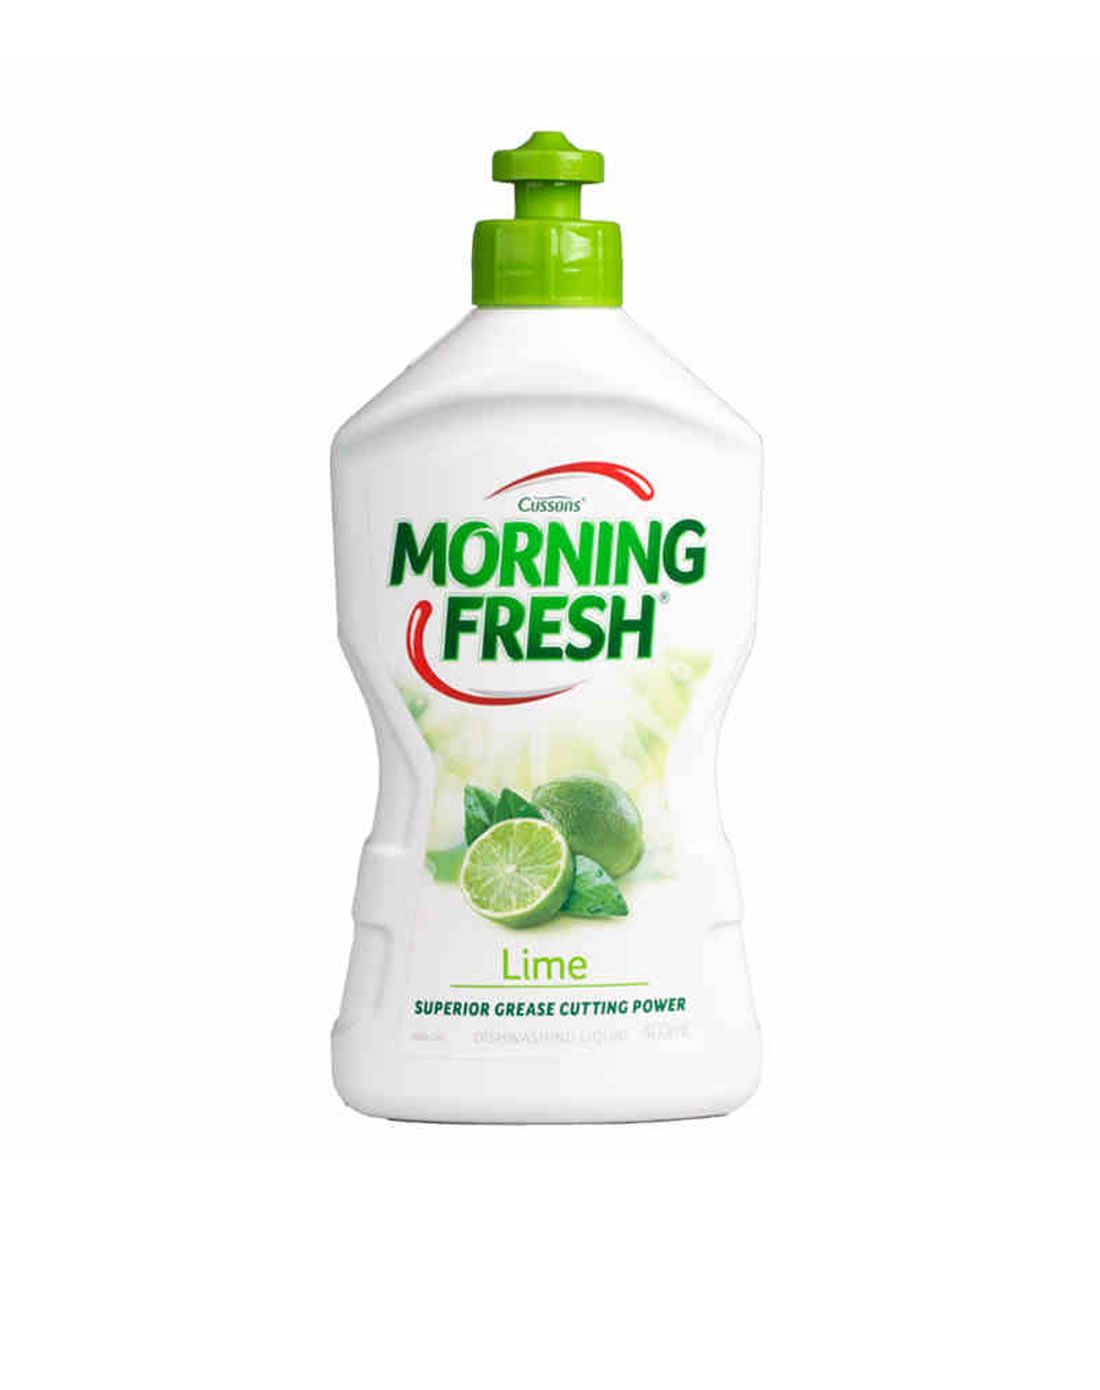 Morning Fresh 清新早晨洗洁精 400ML 青柠味